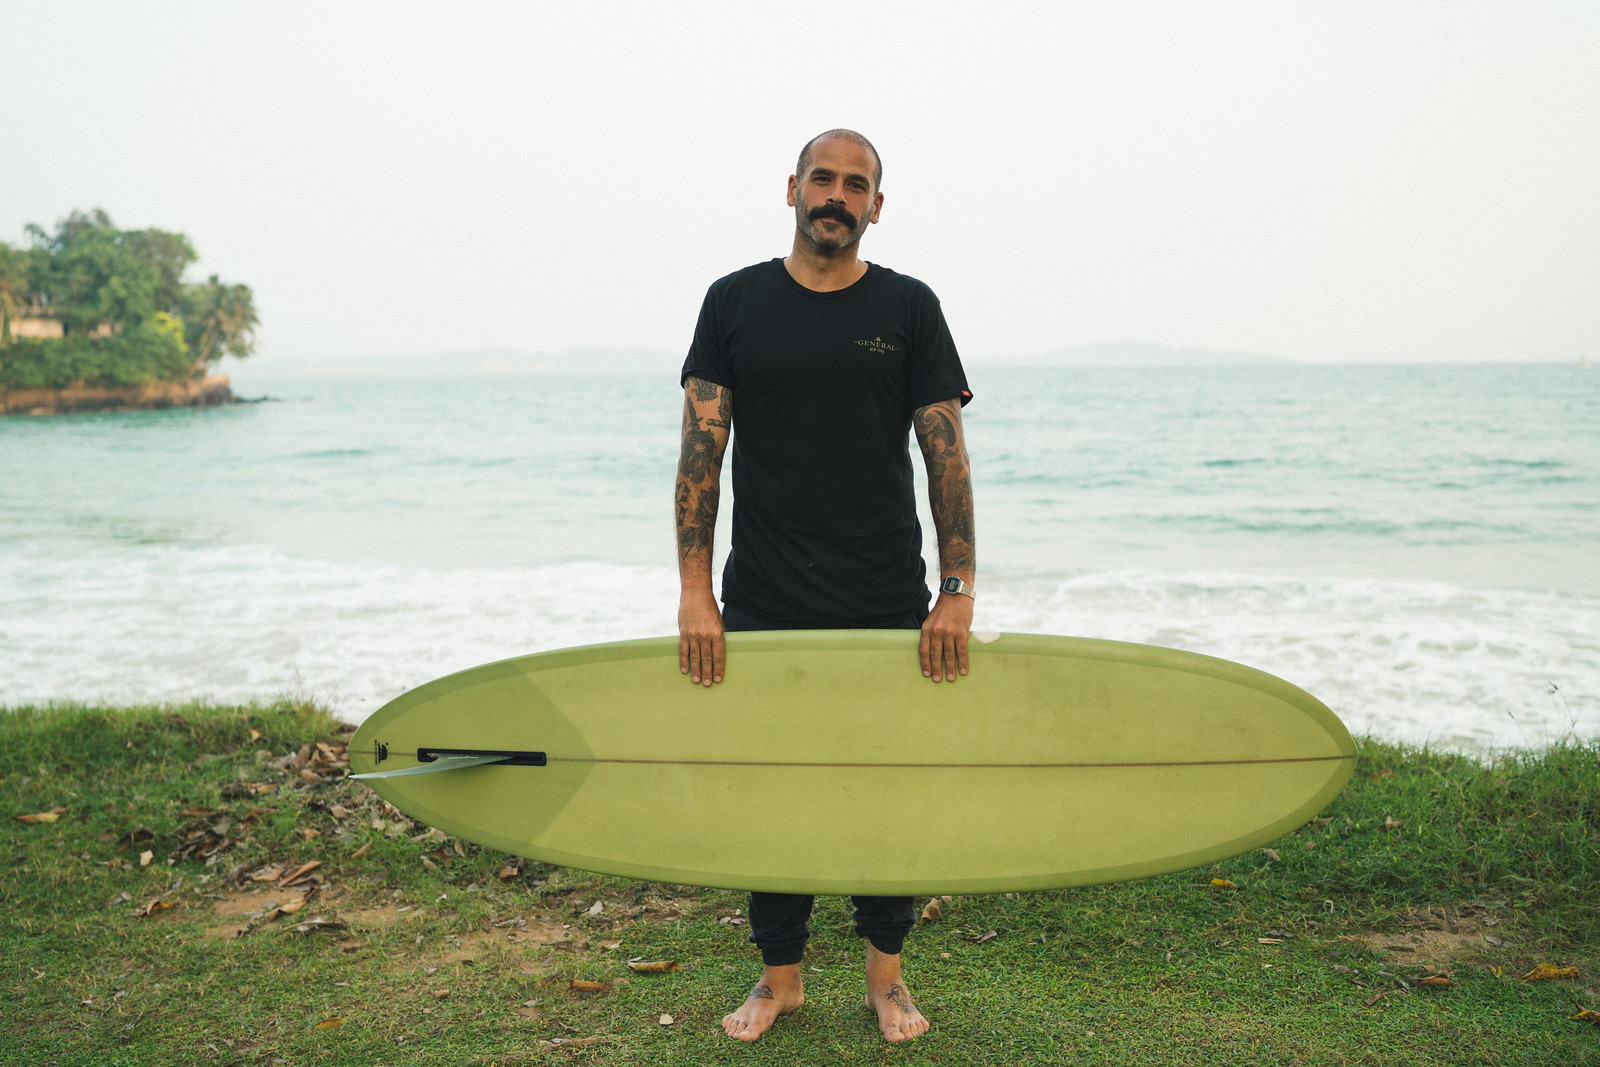 Anis Khoury: On Surfing New York City